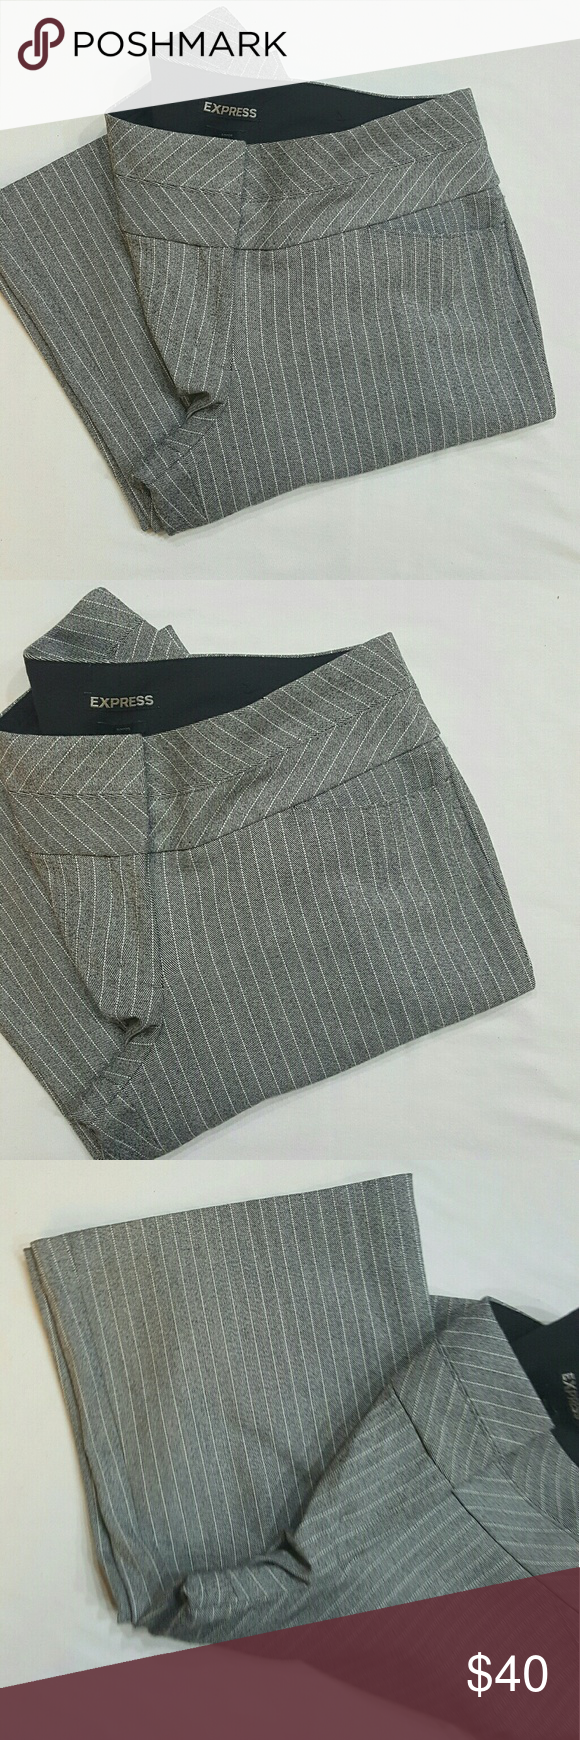 Express Editor grey striped pants Express Editor grey pants with white stripes. Wide leg in perfect condition like new no flaws. Size 6 regular. Express Pants Wide Leg